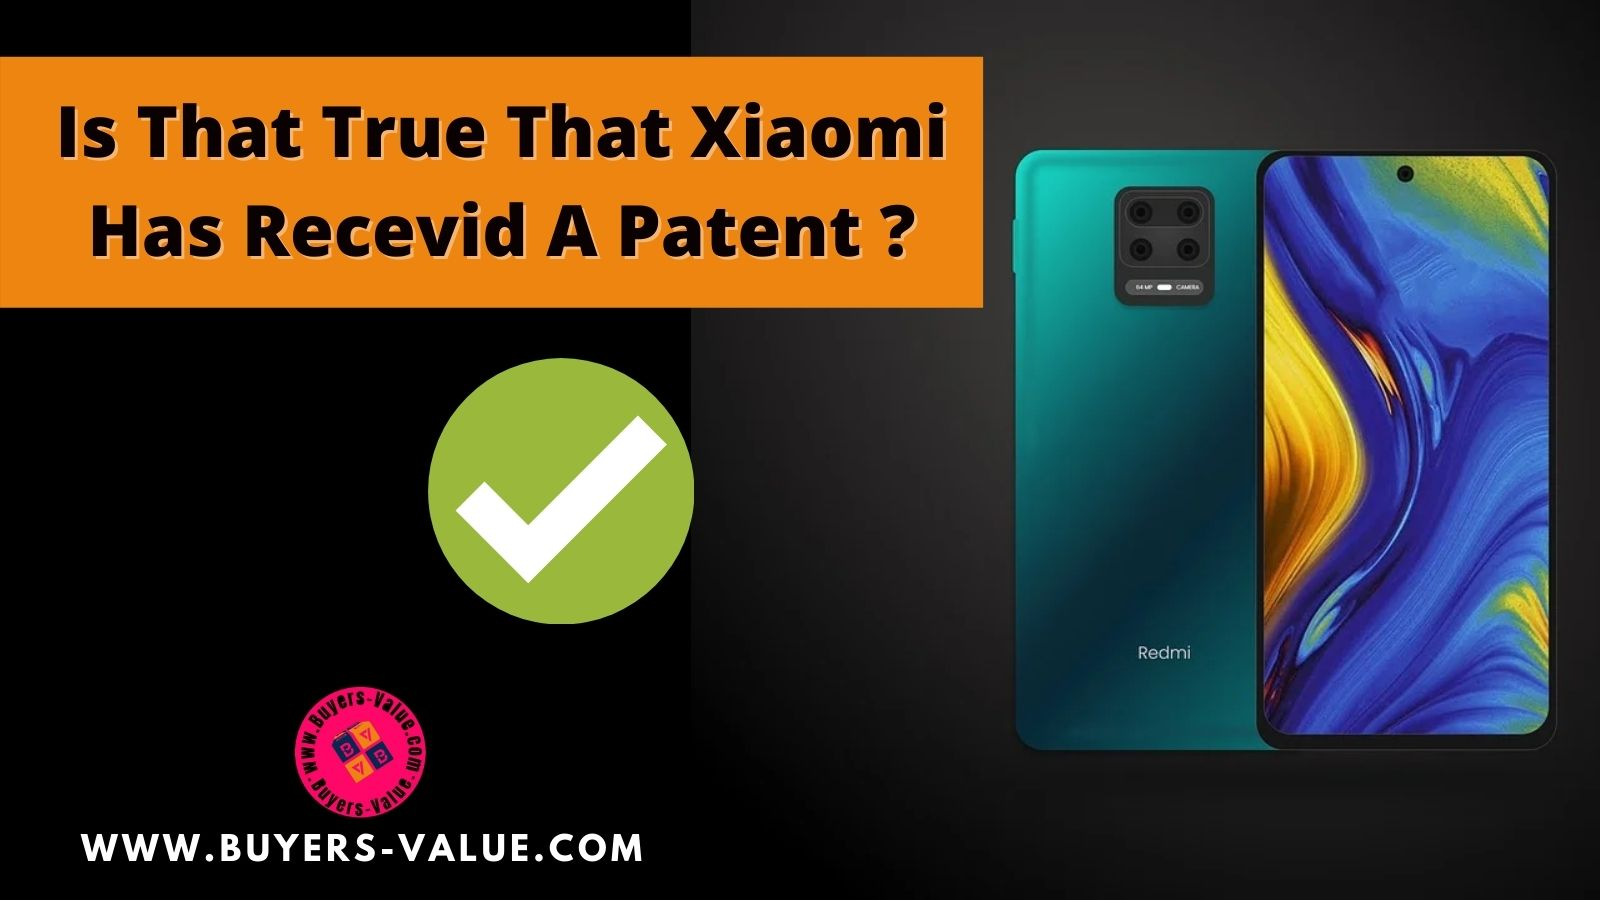 Xiaomi has received a Patent